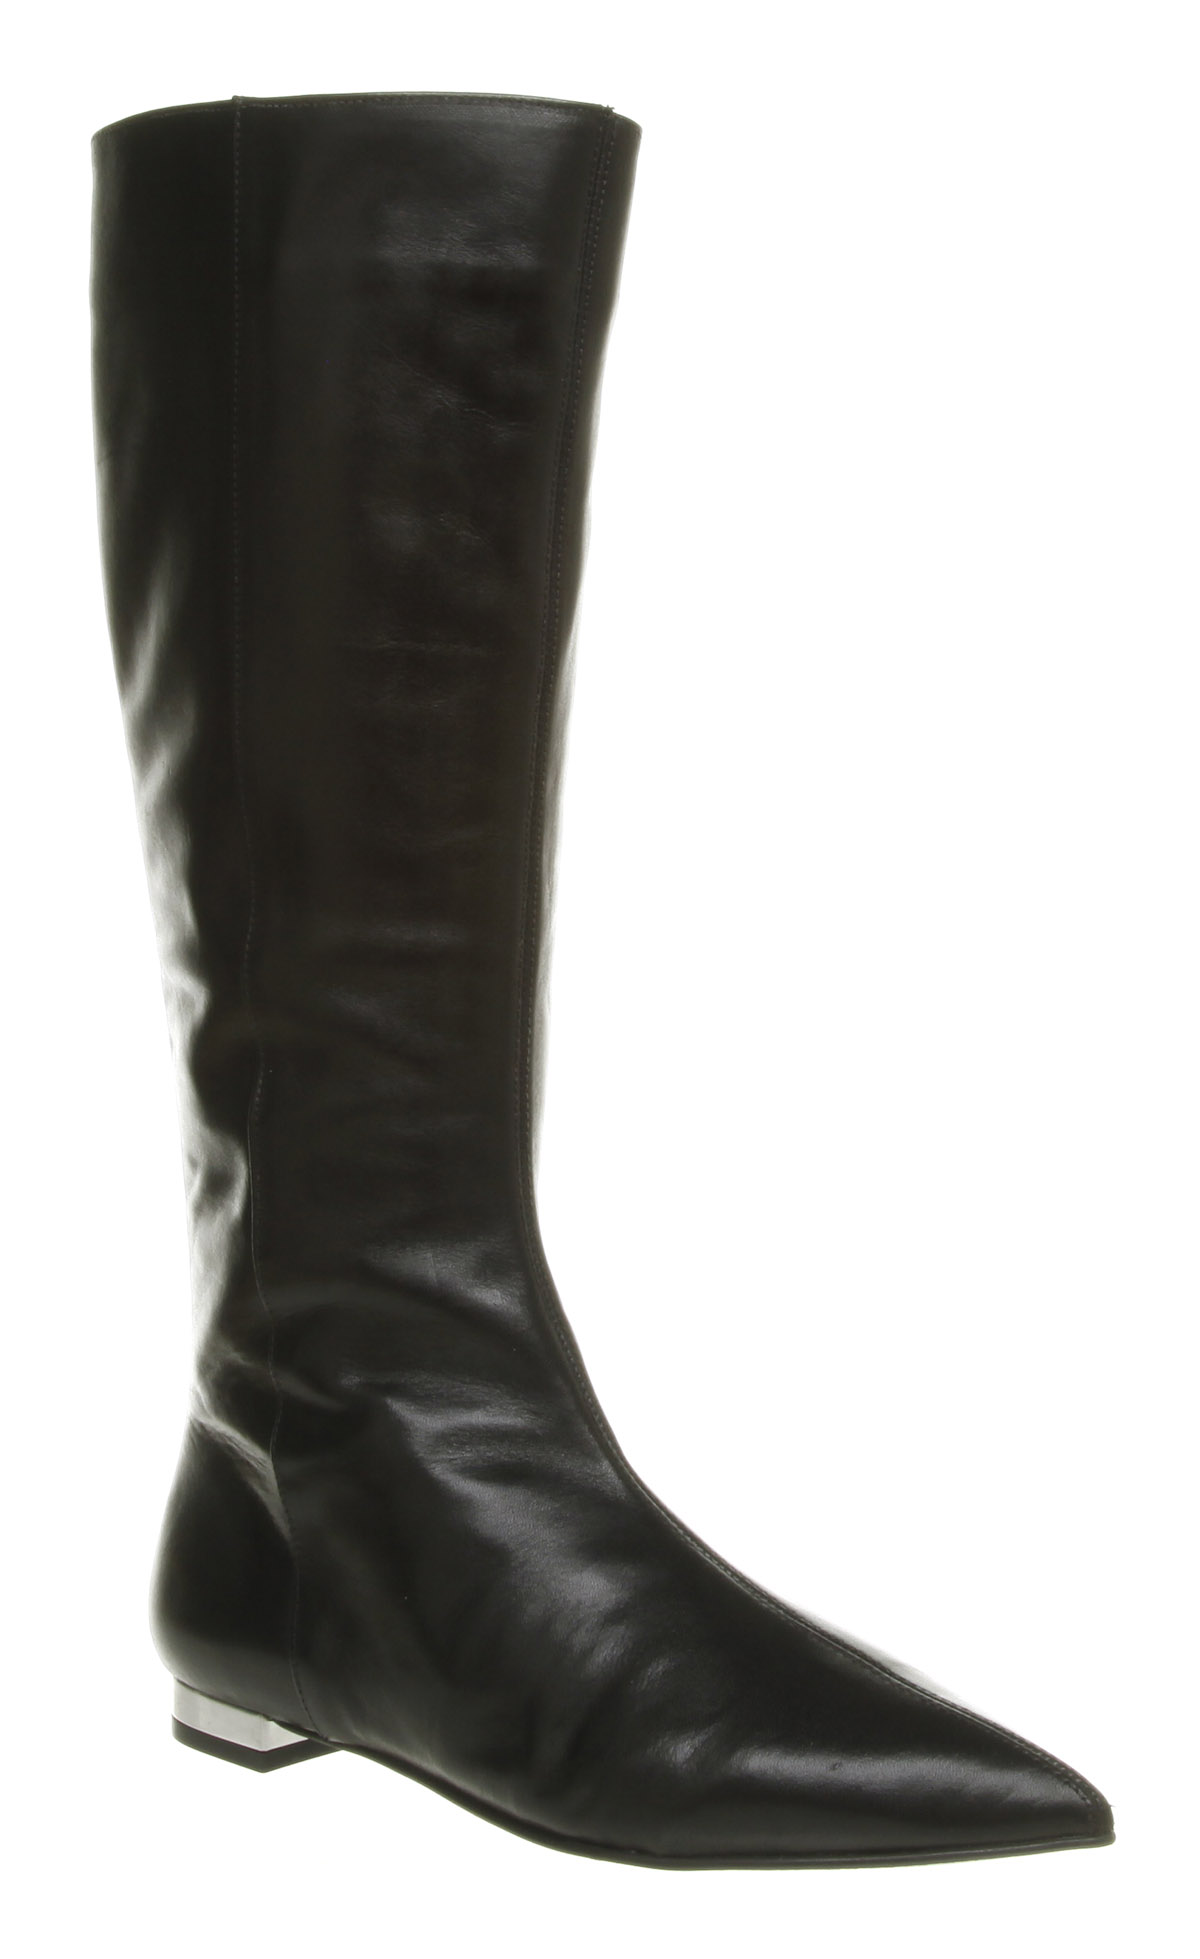 Leather Booties Lyst - Office Jam Flat Pointy Boot Black Leather In Black